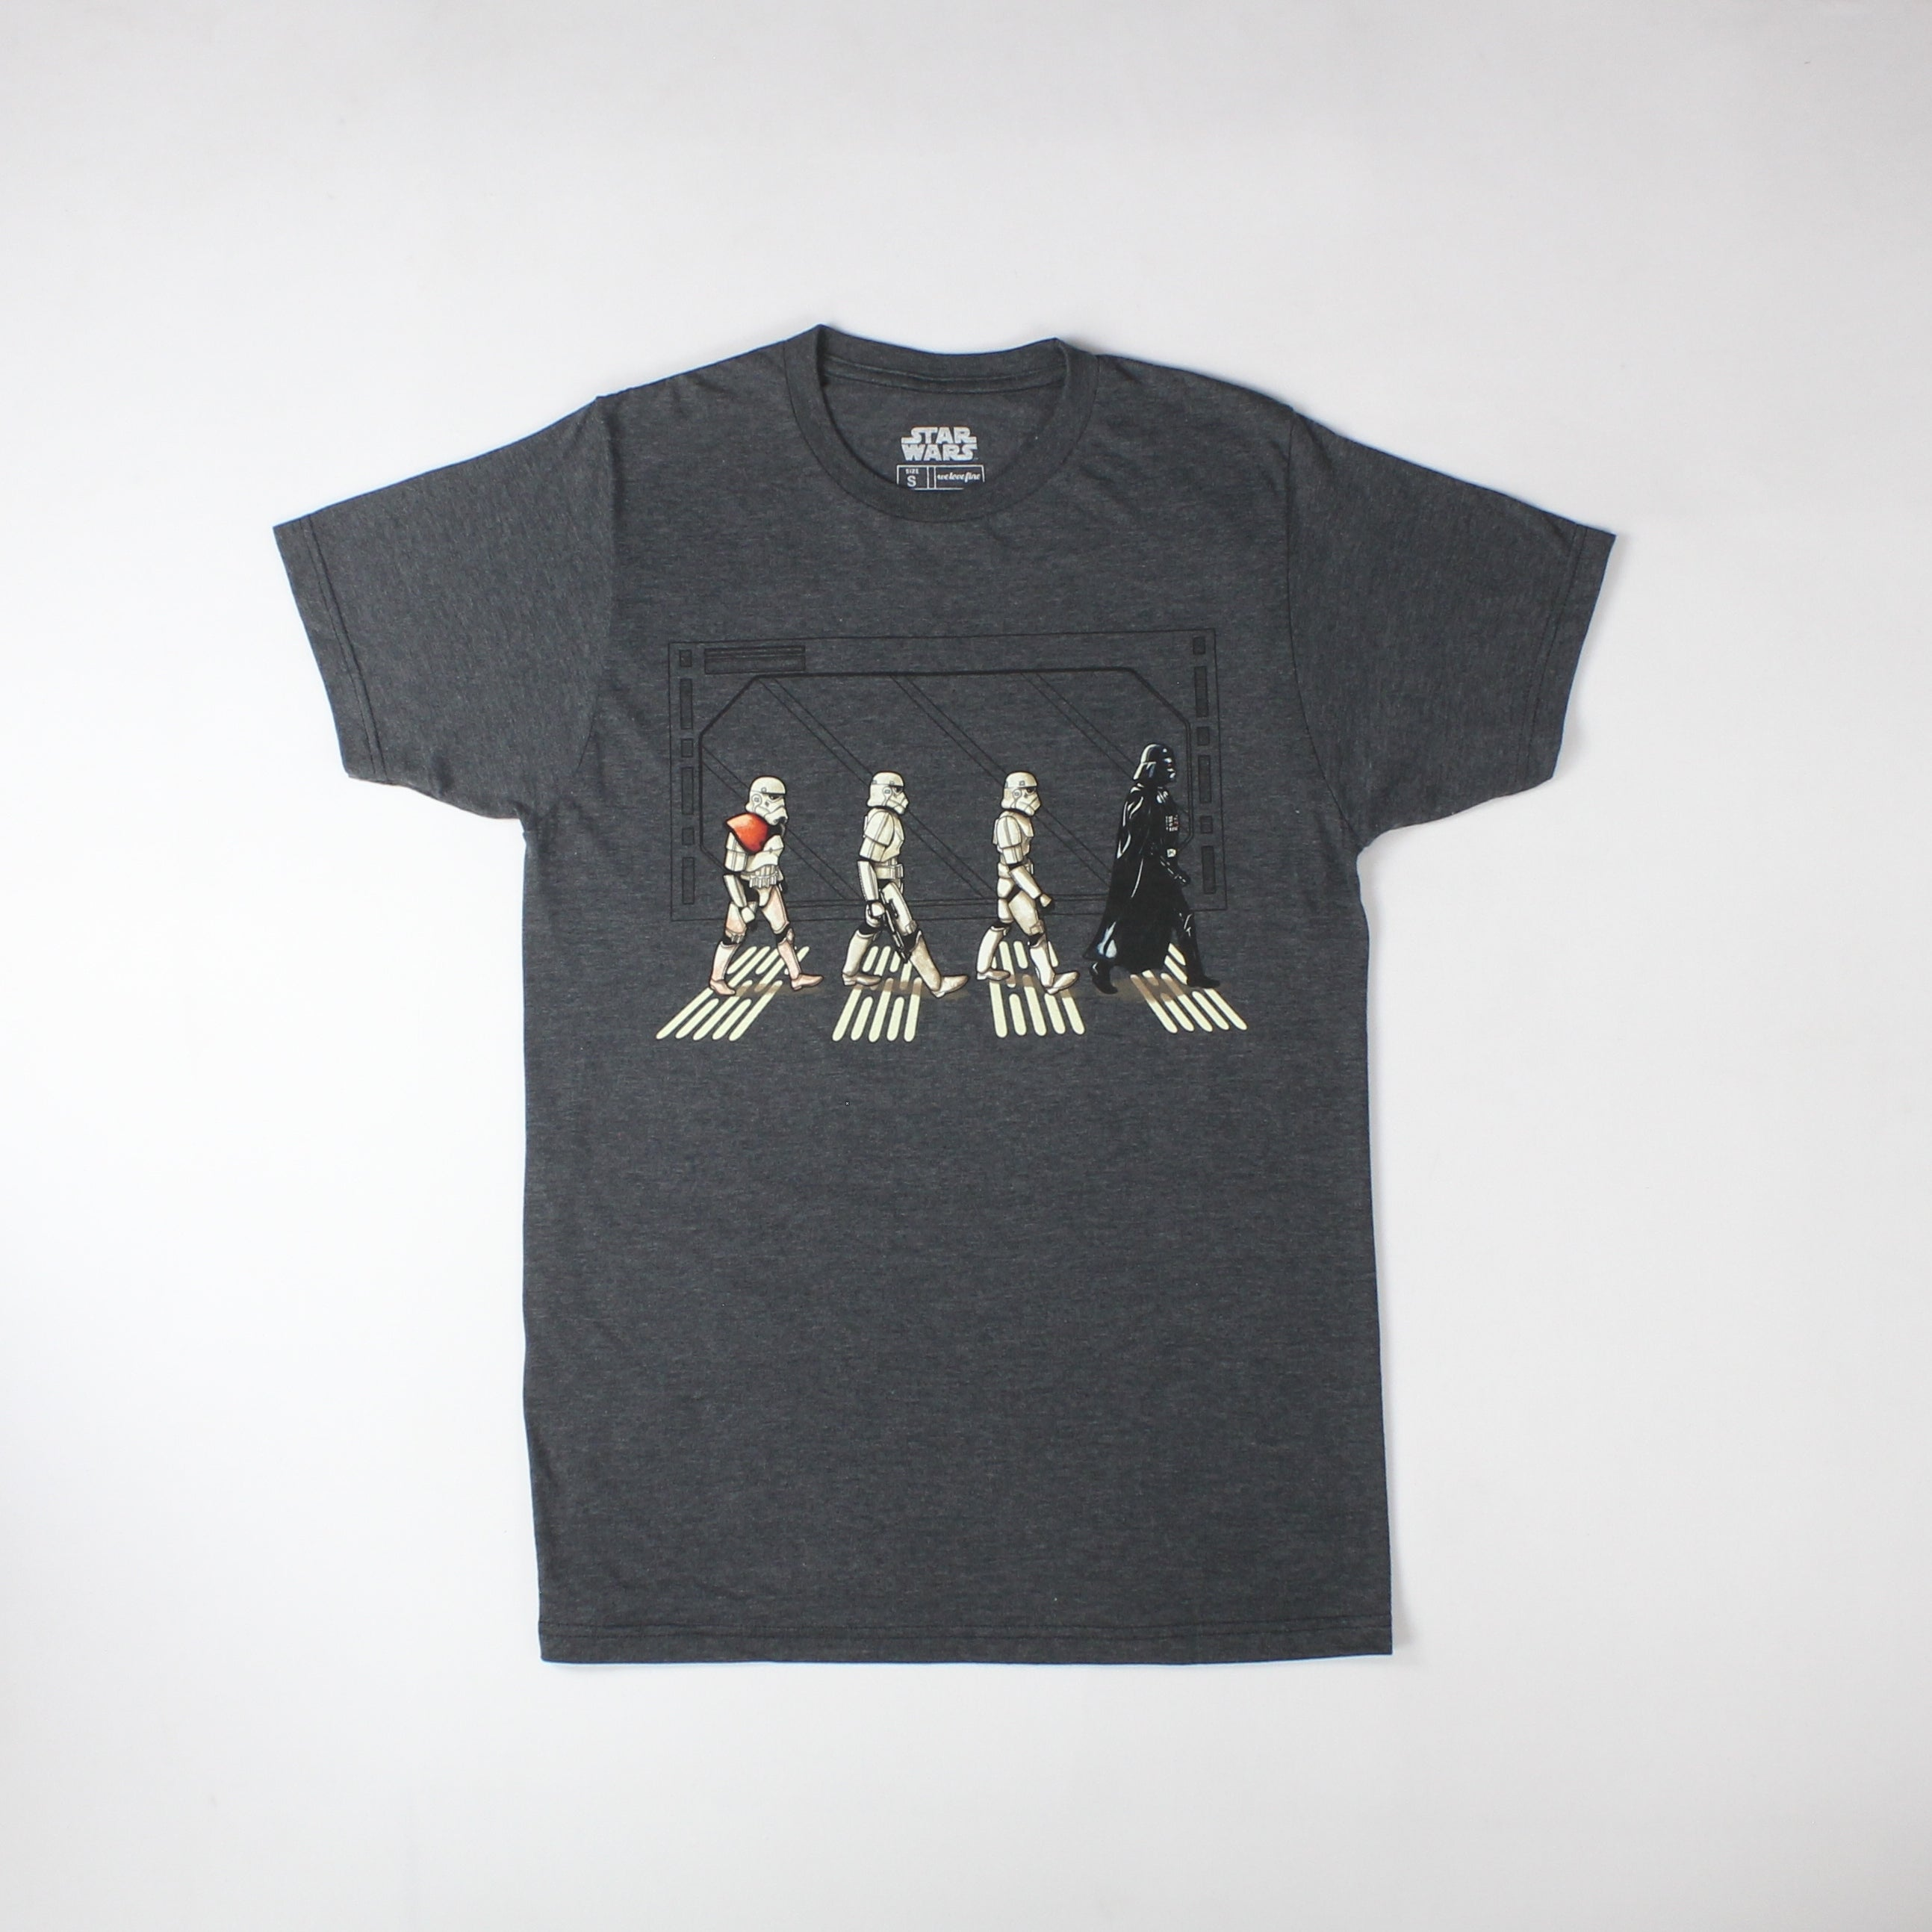 0e73ad75a5e Shop Star Wars Darth Vader And Stormtroopers Walking Abbey Road Men s Black  T-shirt - Free Shipping On Orders Over  45 - Overstock - 17750255